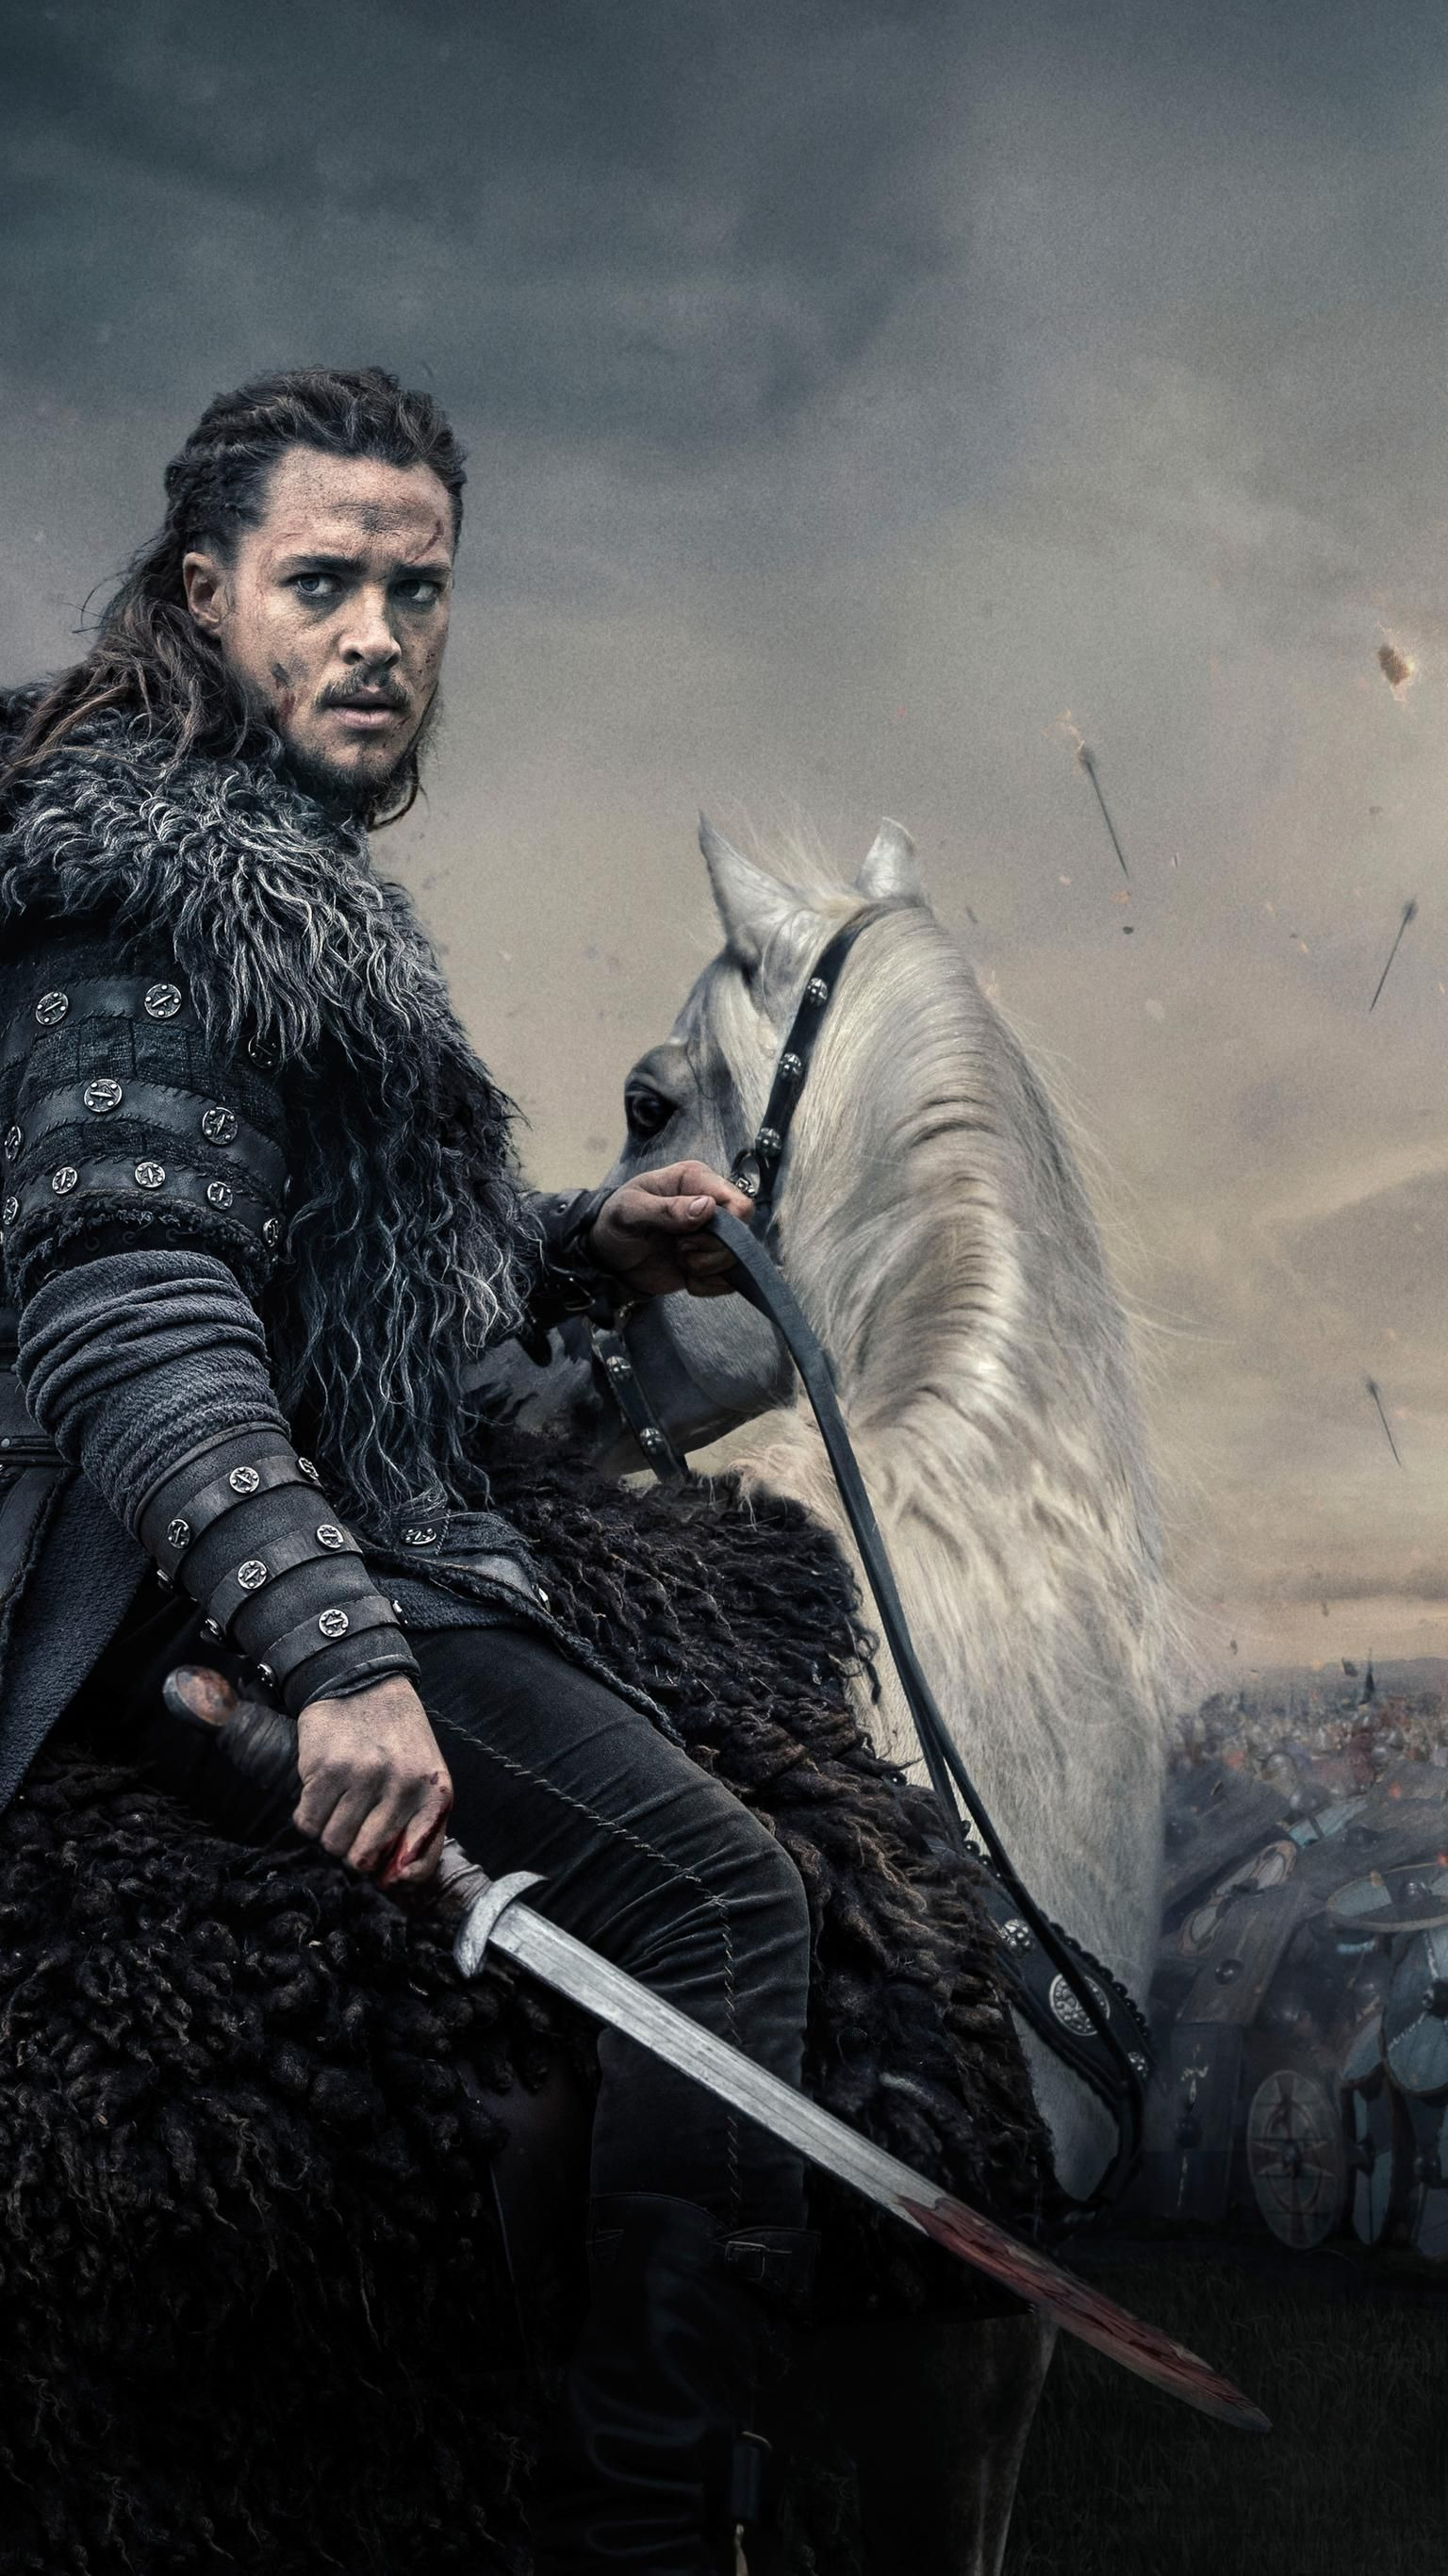 The Last Kingdom Phone Wallpaper Moviemania Kingdom Movie The Last Kingdom Last Kingdom Season 2